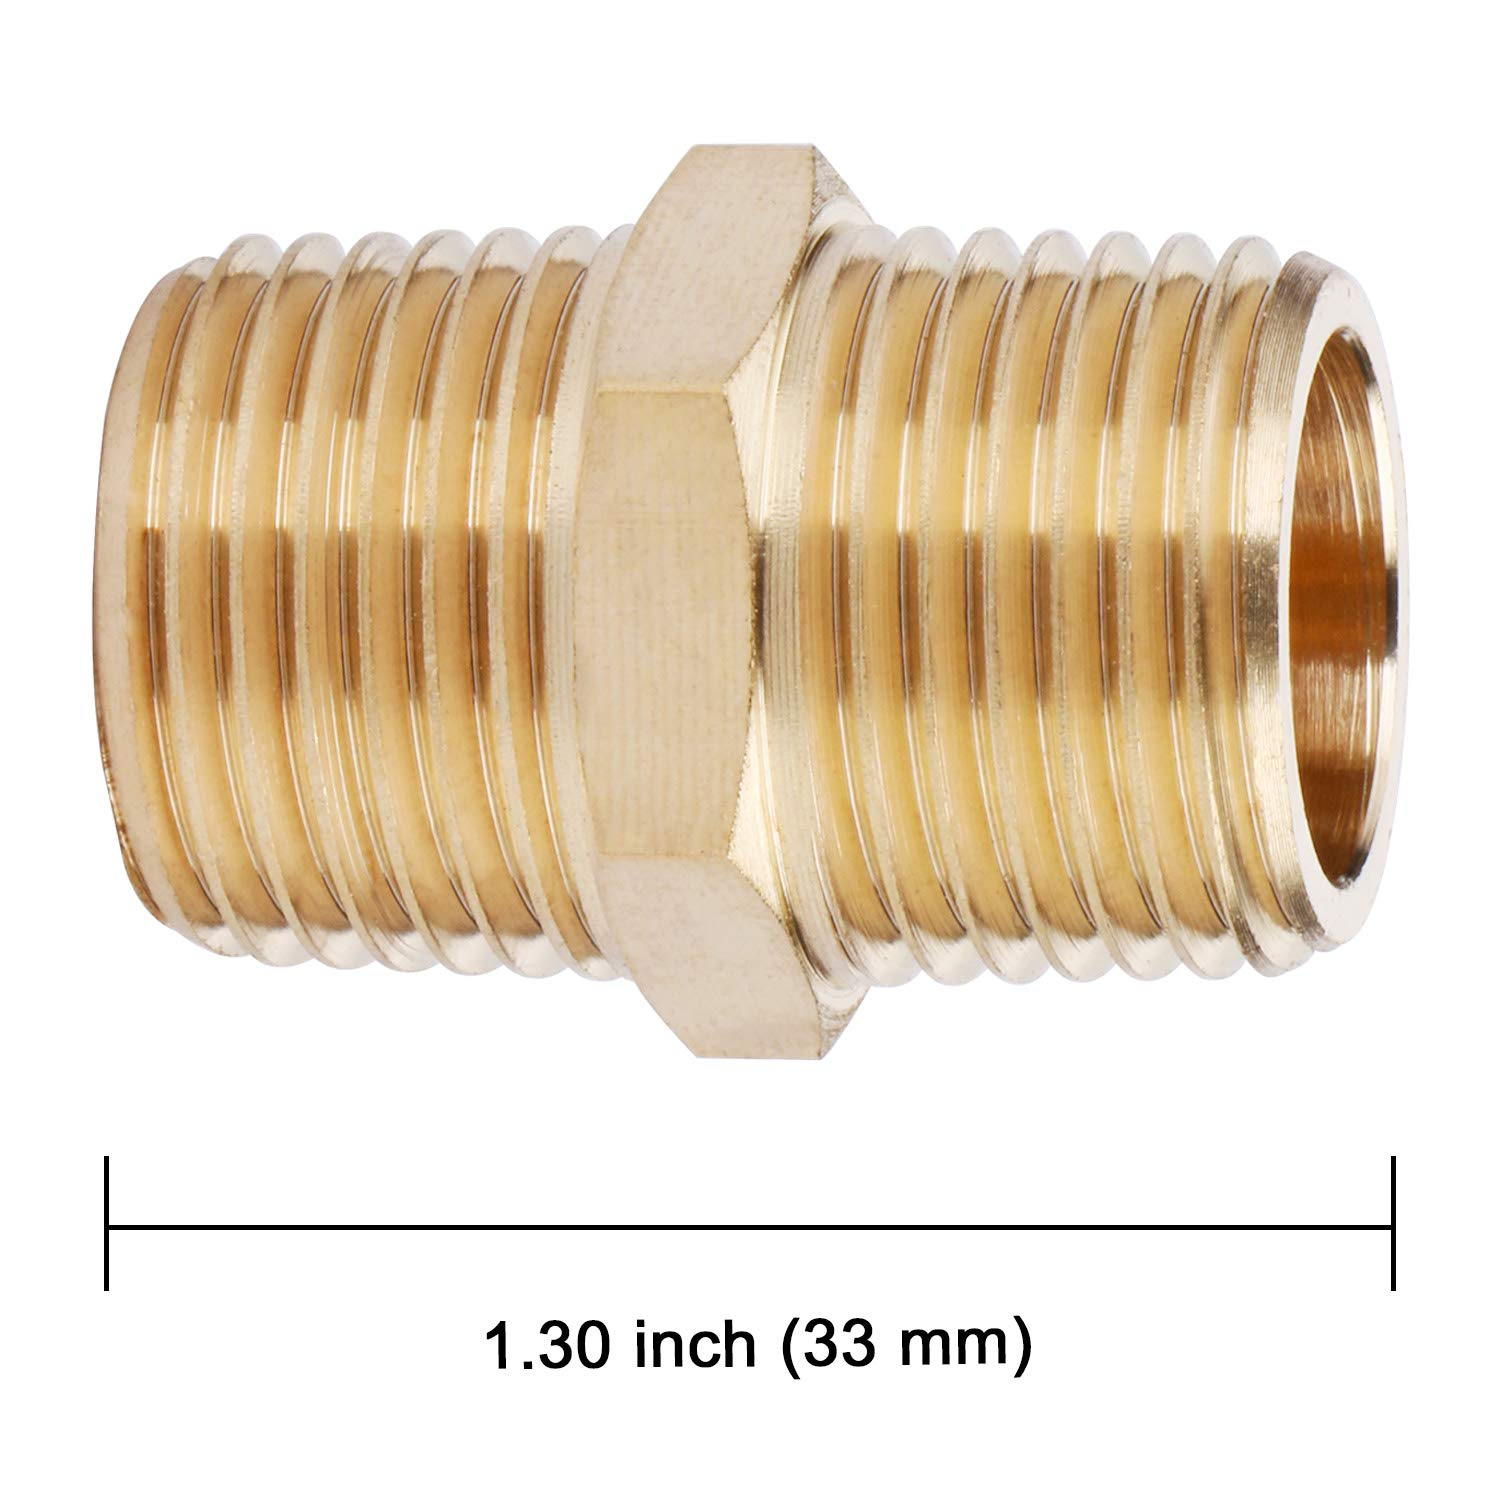 3//4 x 3//4 NPT Male Pipe Adapter U.S Hex Nipple Solid Brass Pipe Fitting